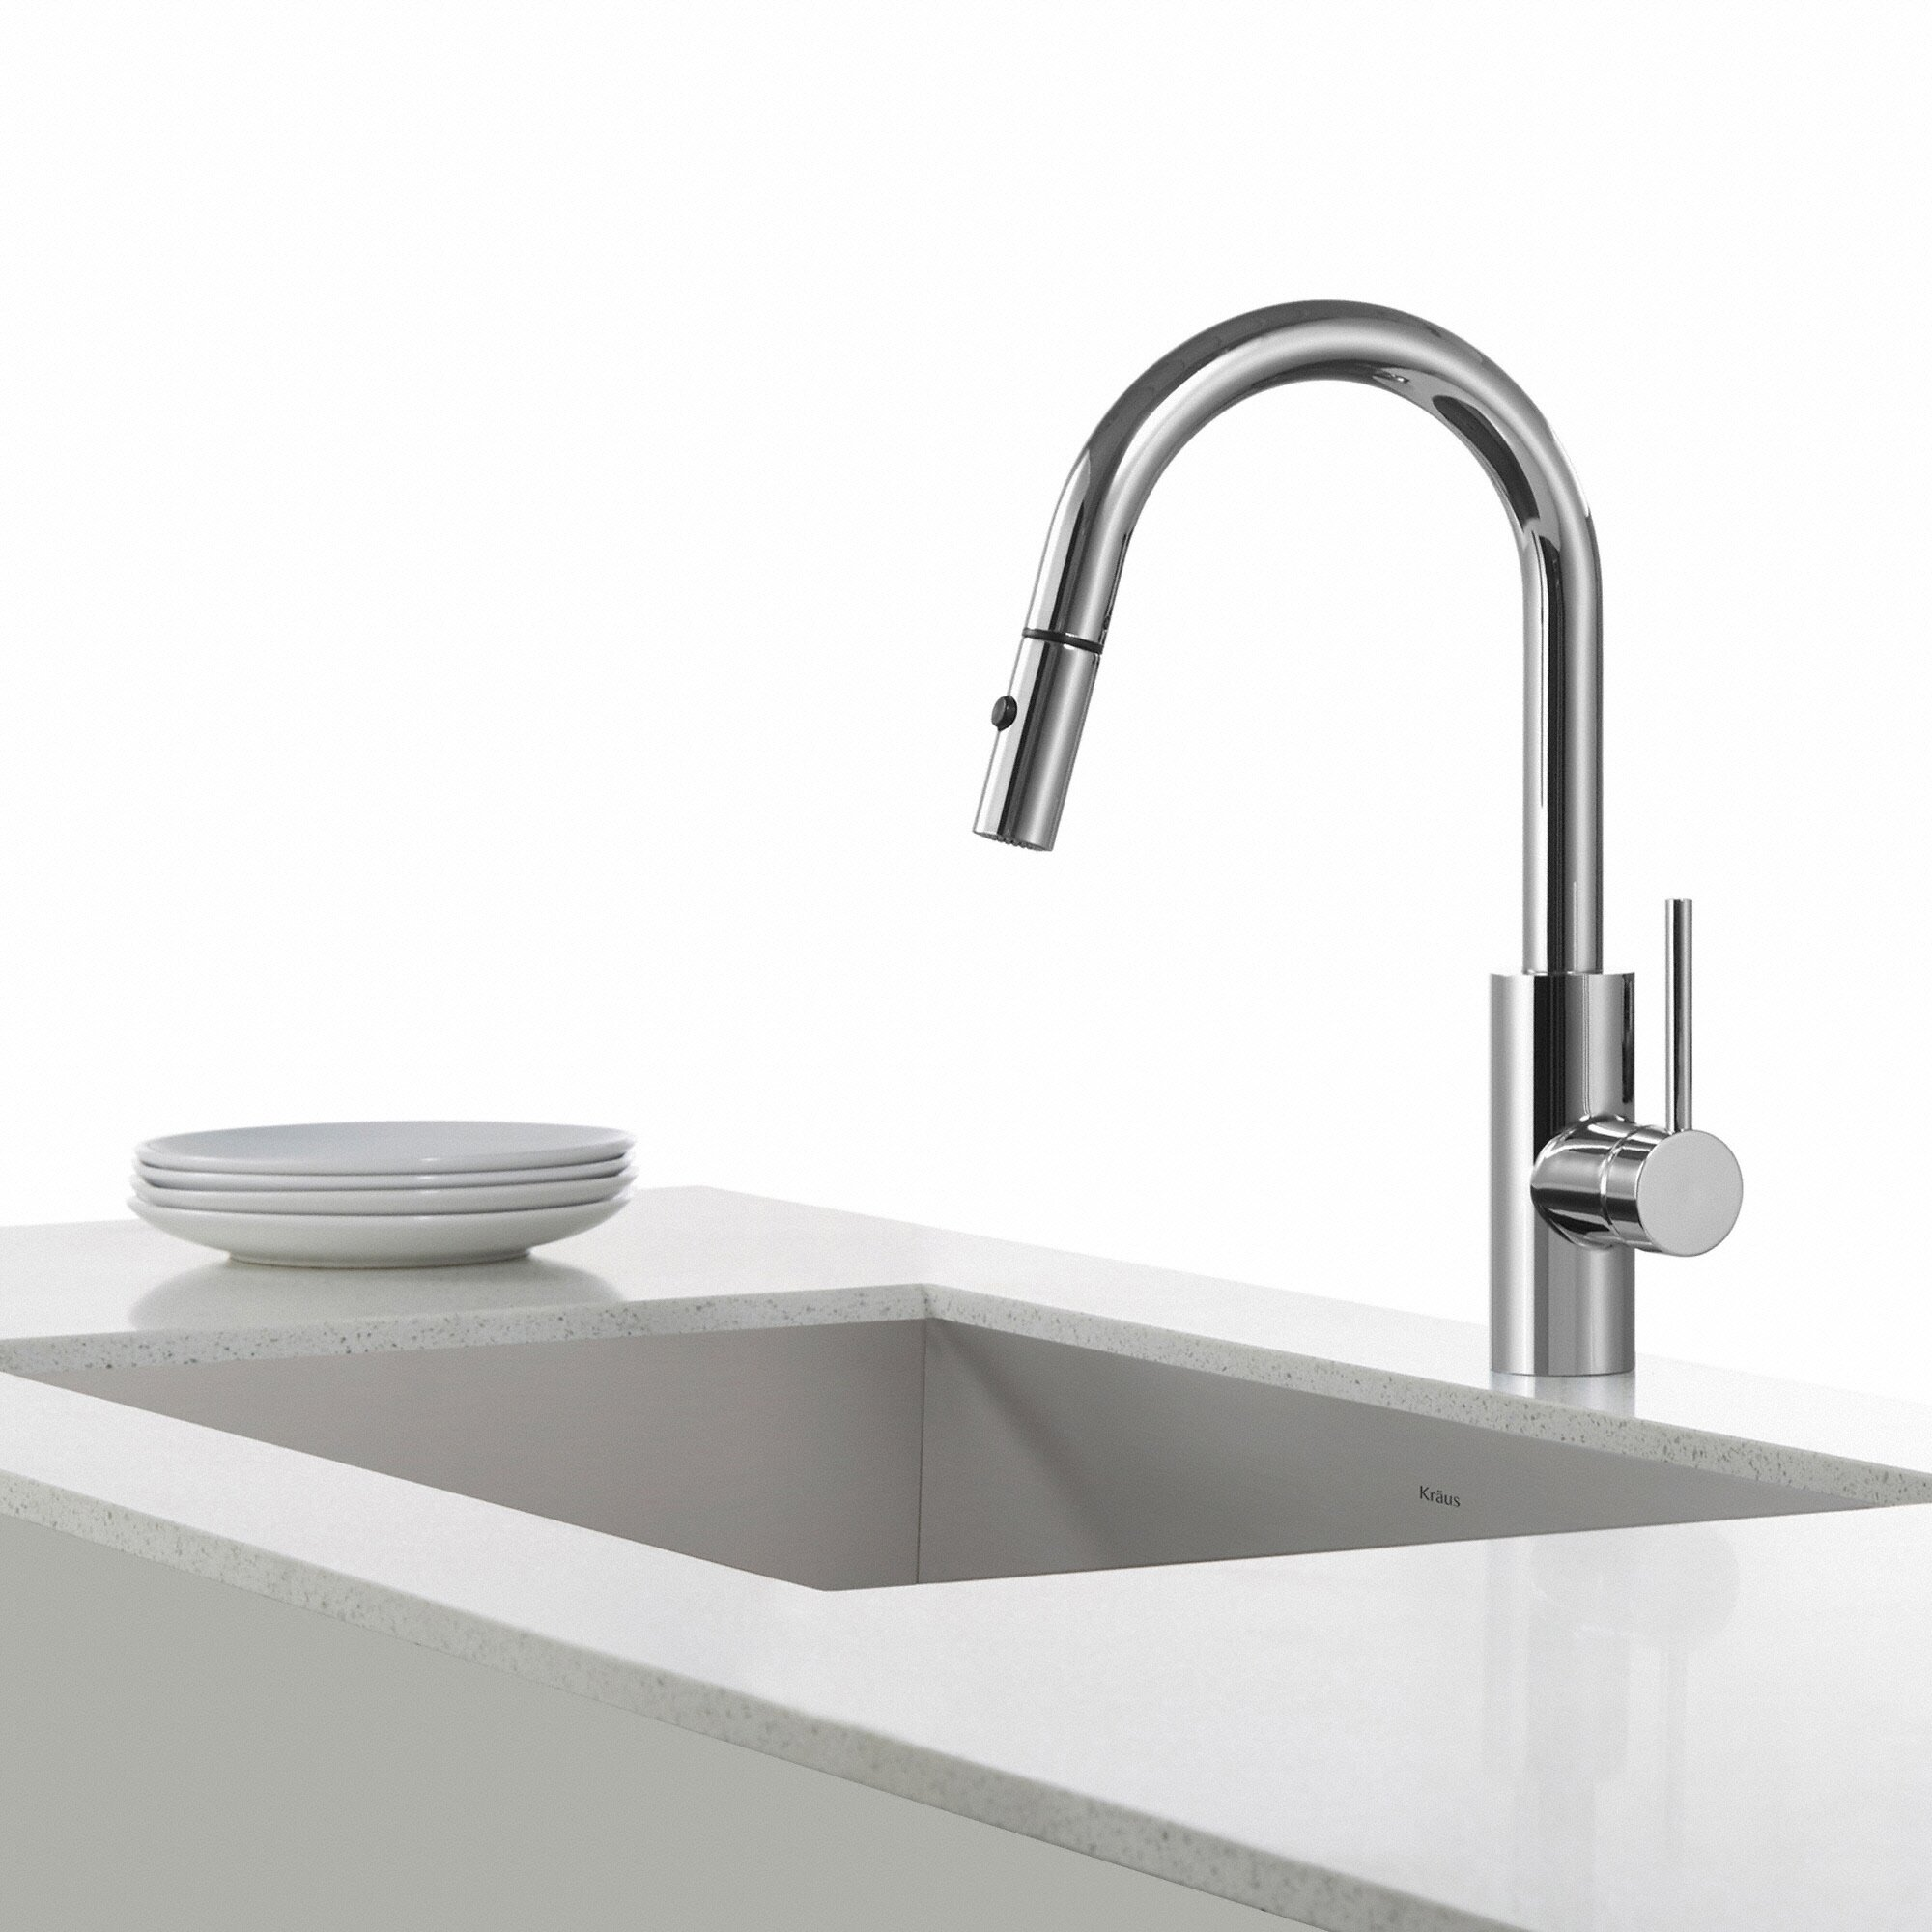 Kraus Faucets Reviews : Kraus Oletto? Single Lever Pull Down Kitchen Faucet & Reviews ...